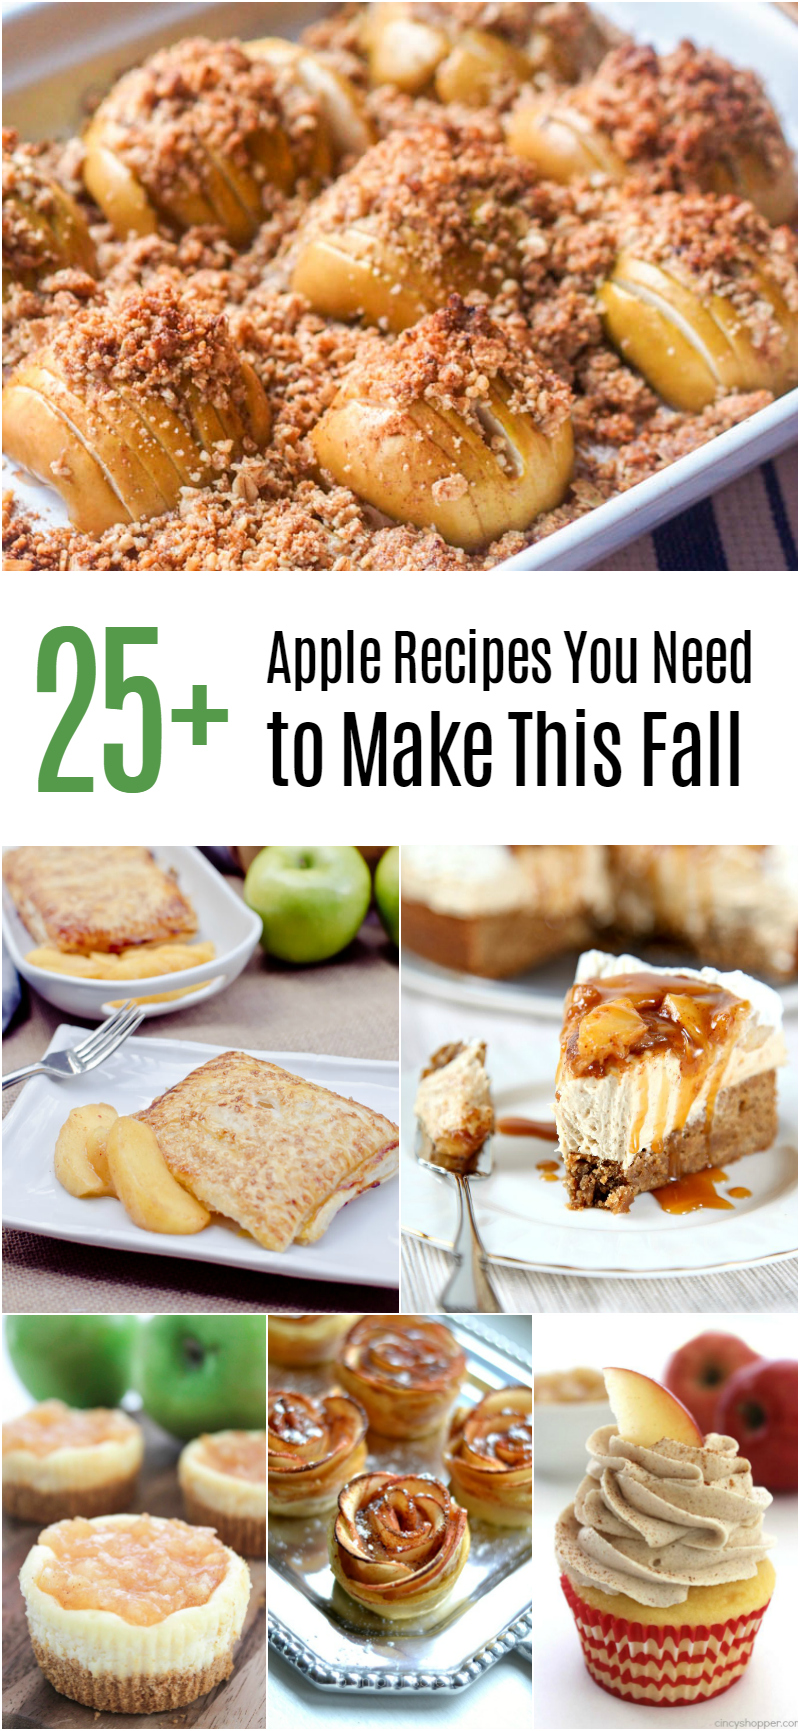 apple-recipes-you-need-to-make-this-fall